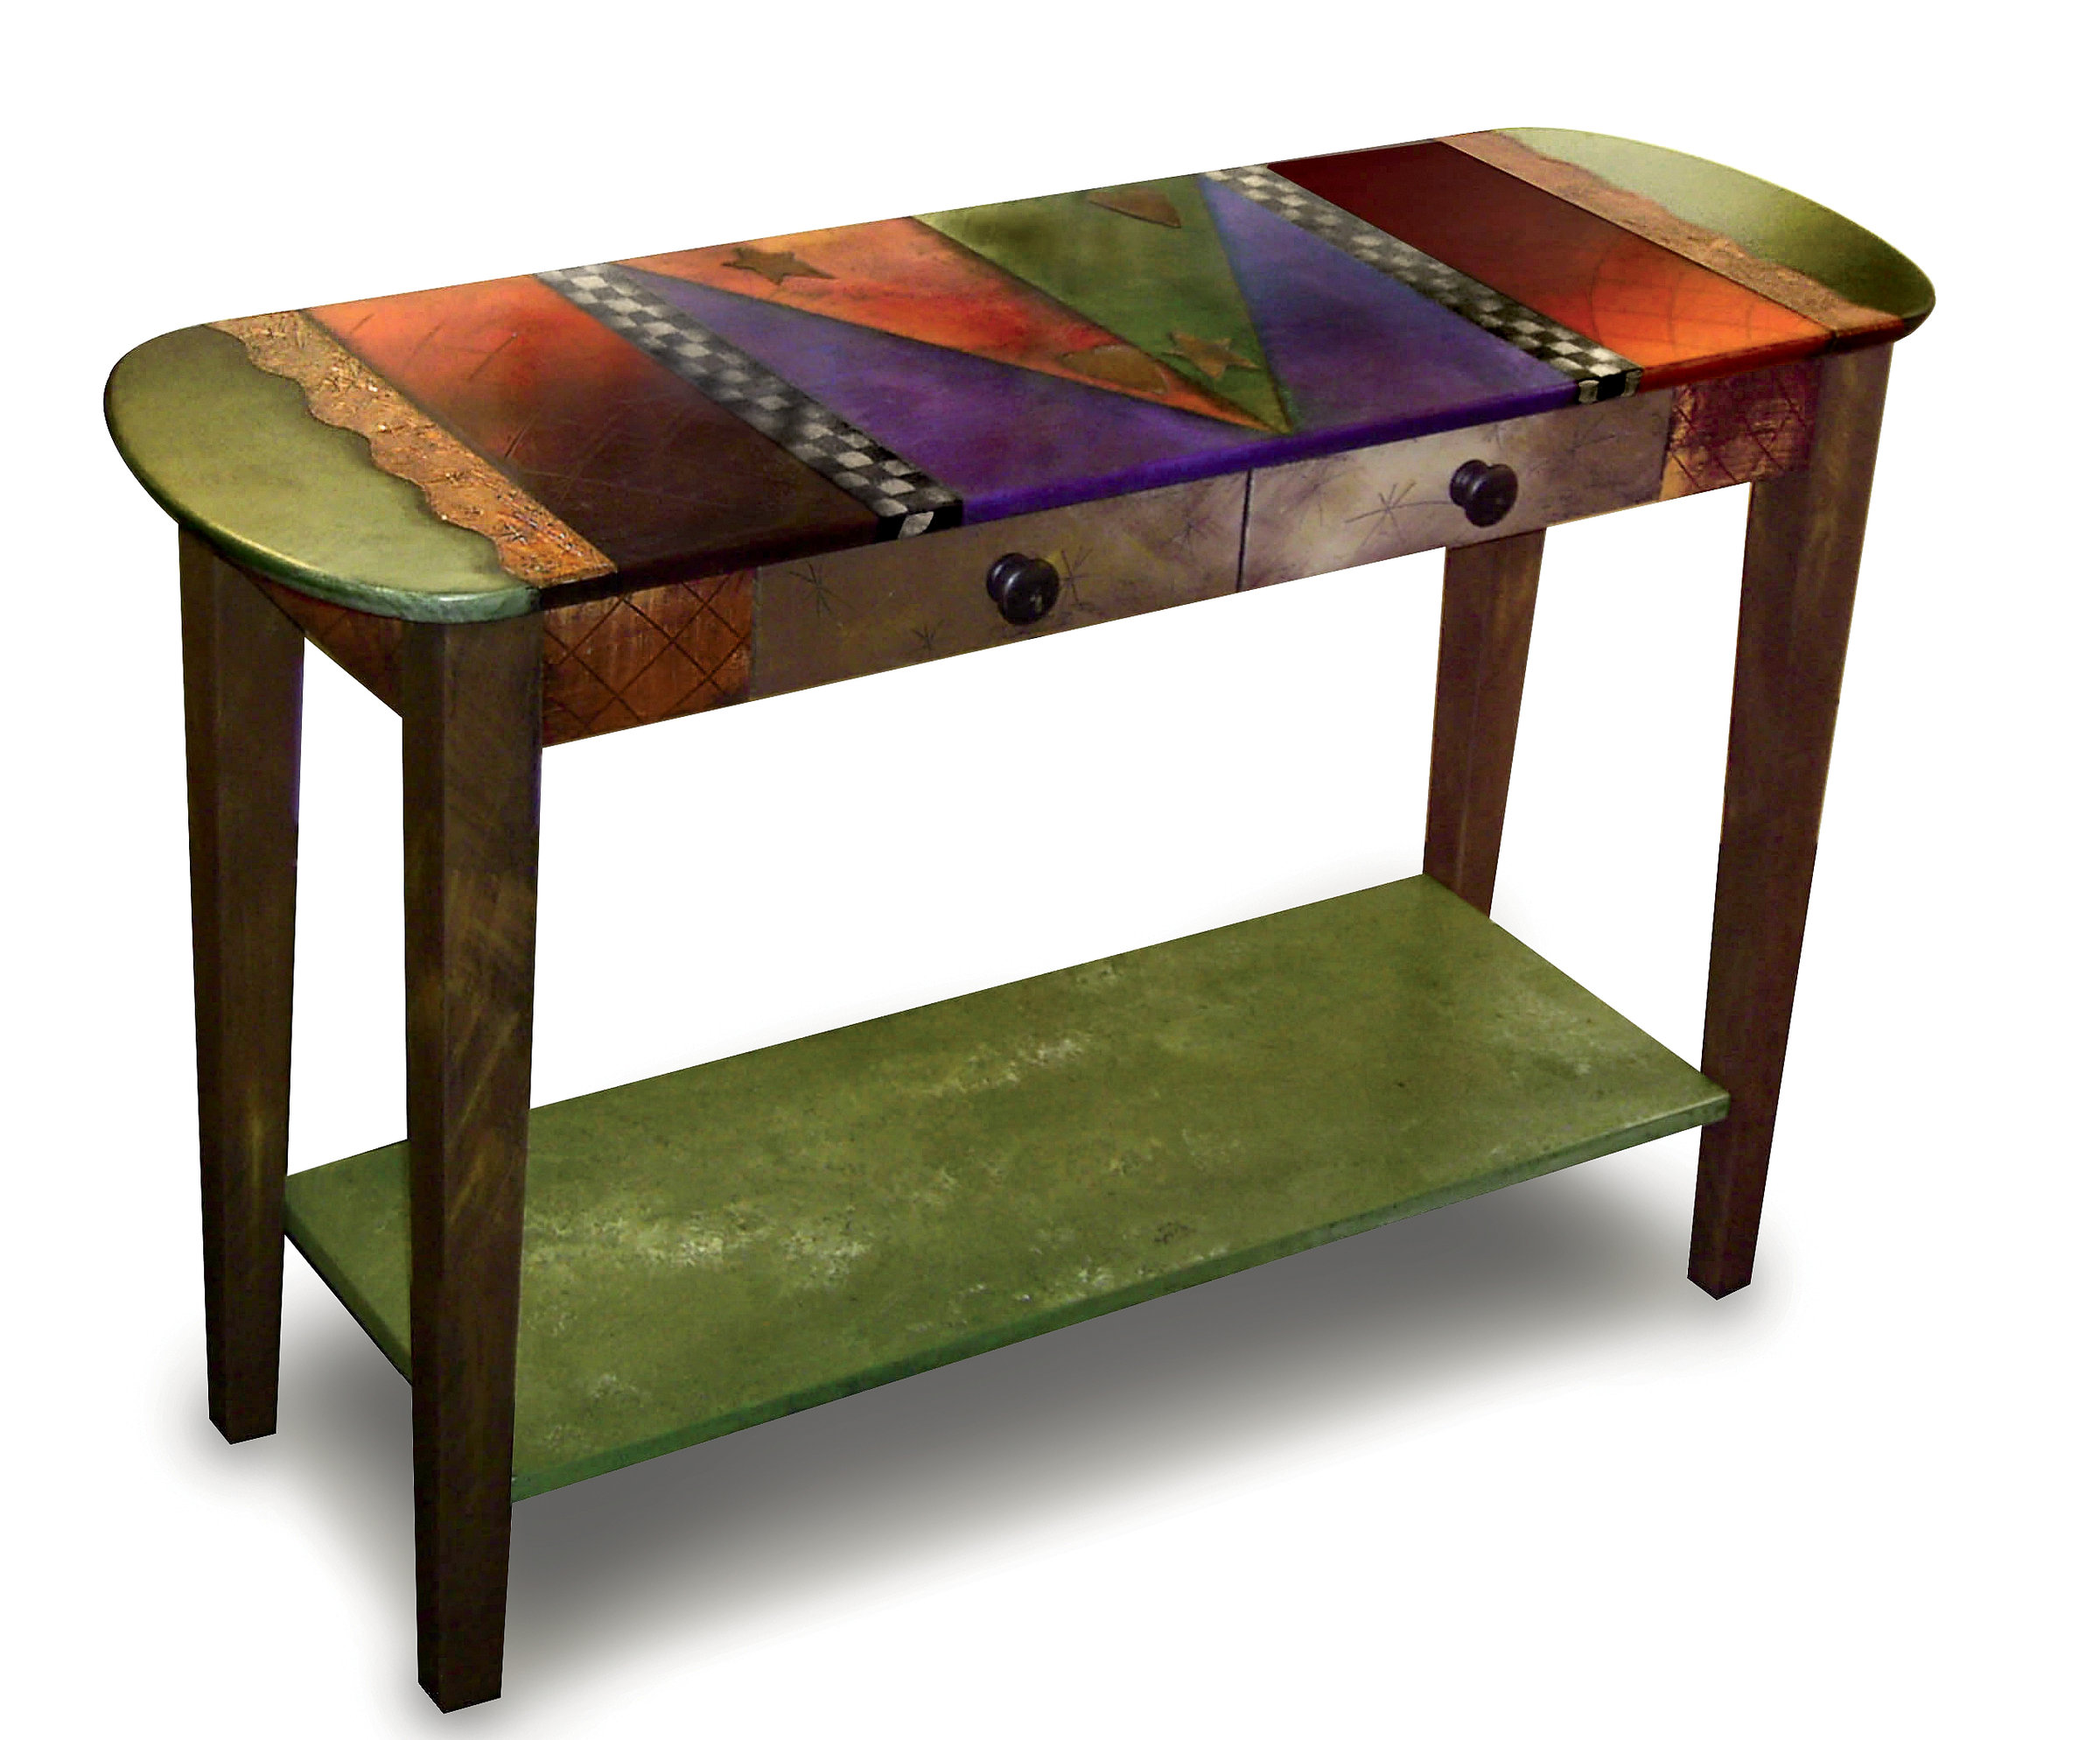 oval sofa table by wendy grossman wood console table artful home. Black Bedroom Furniture Sets. Home Design Ideas